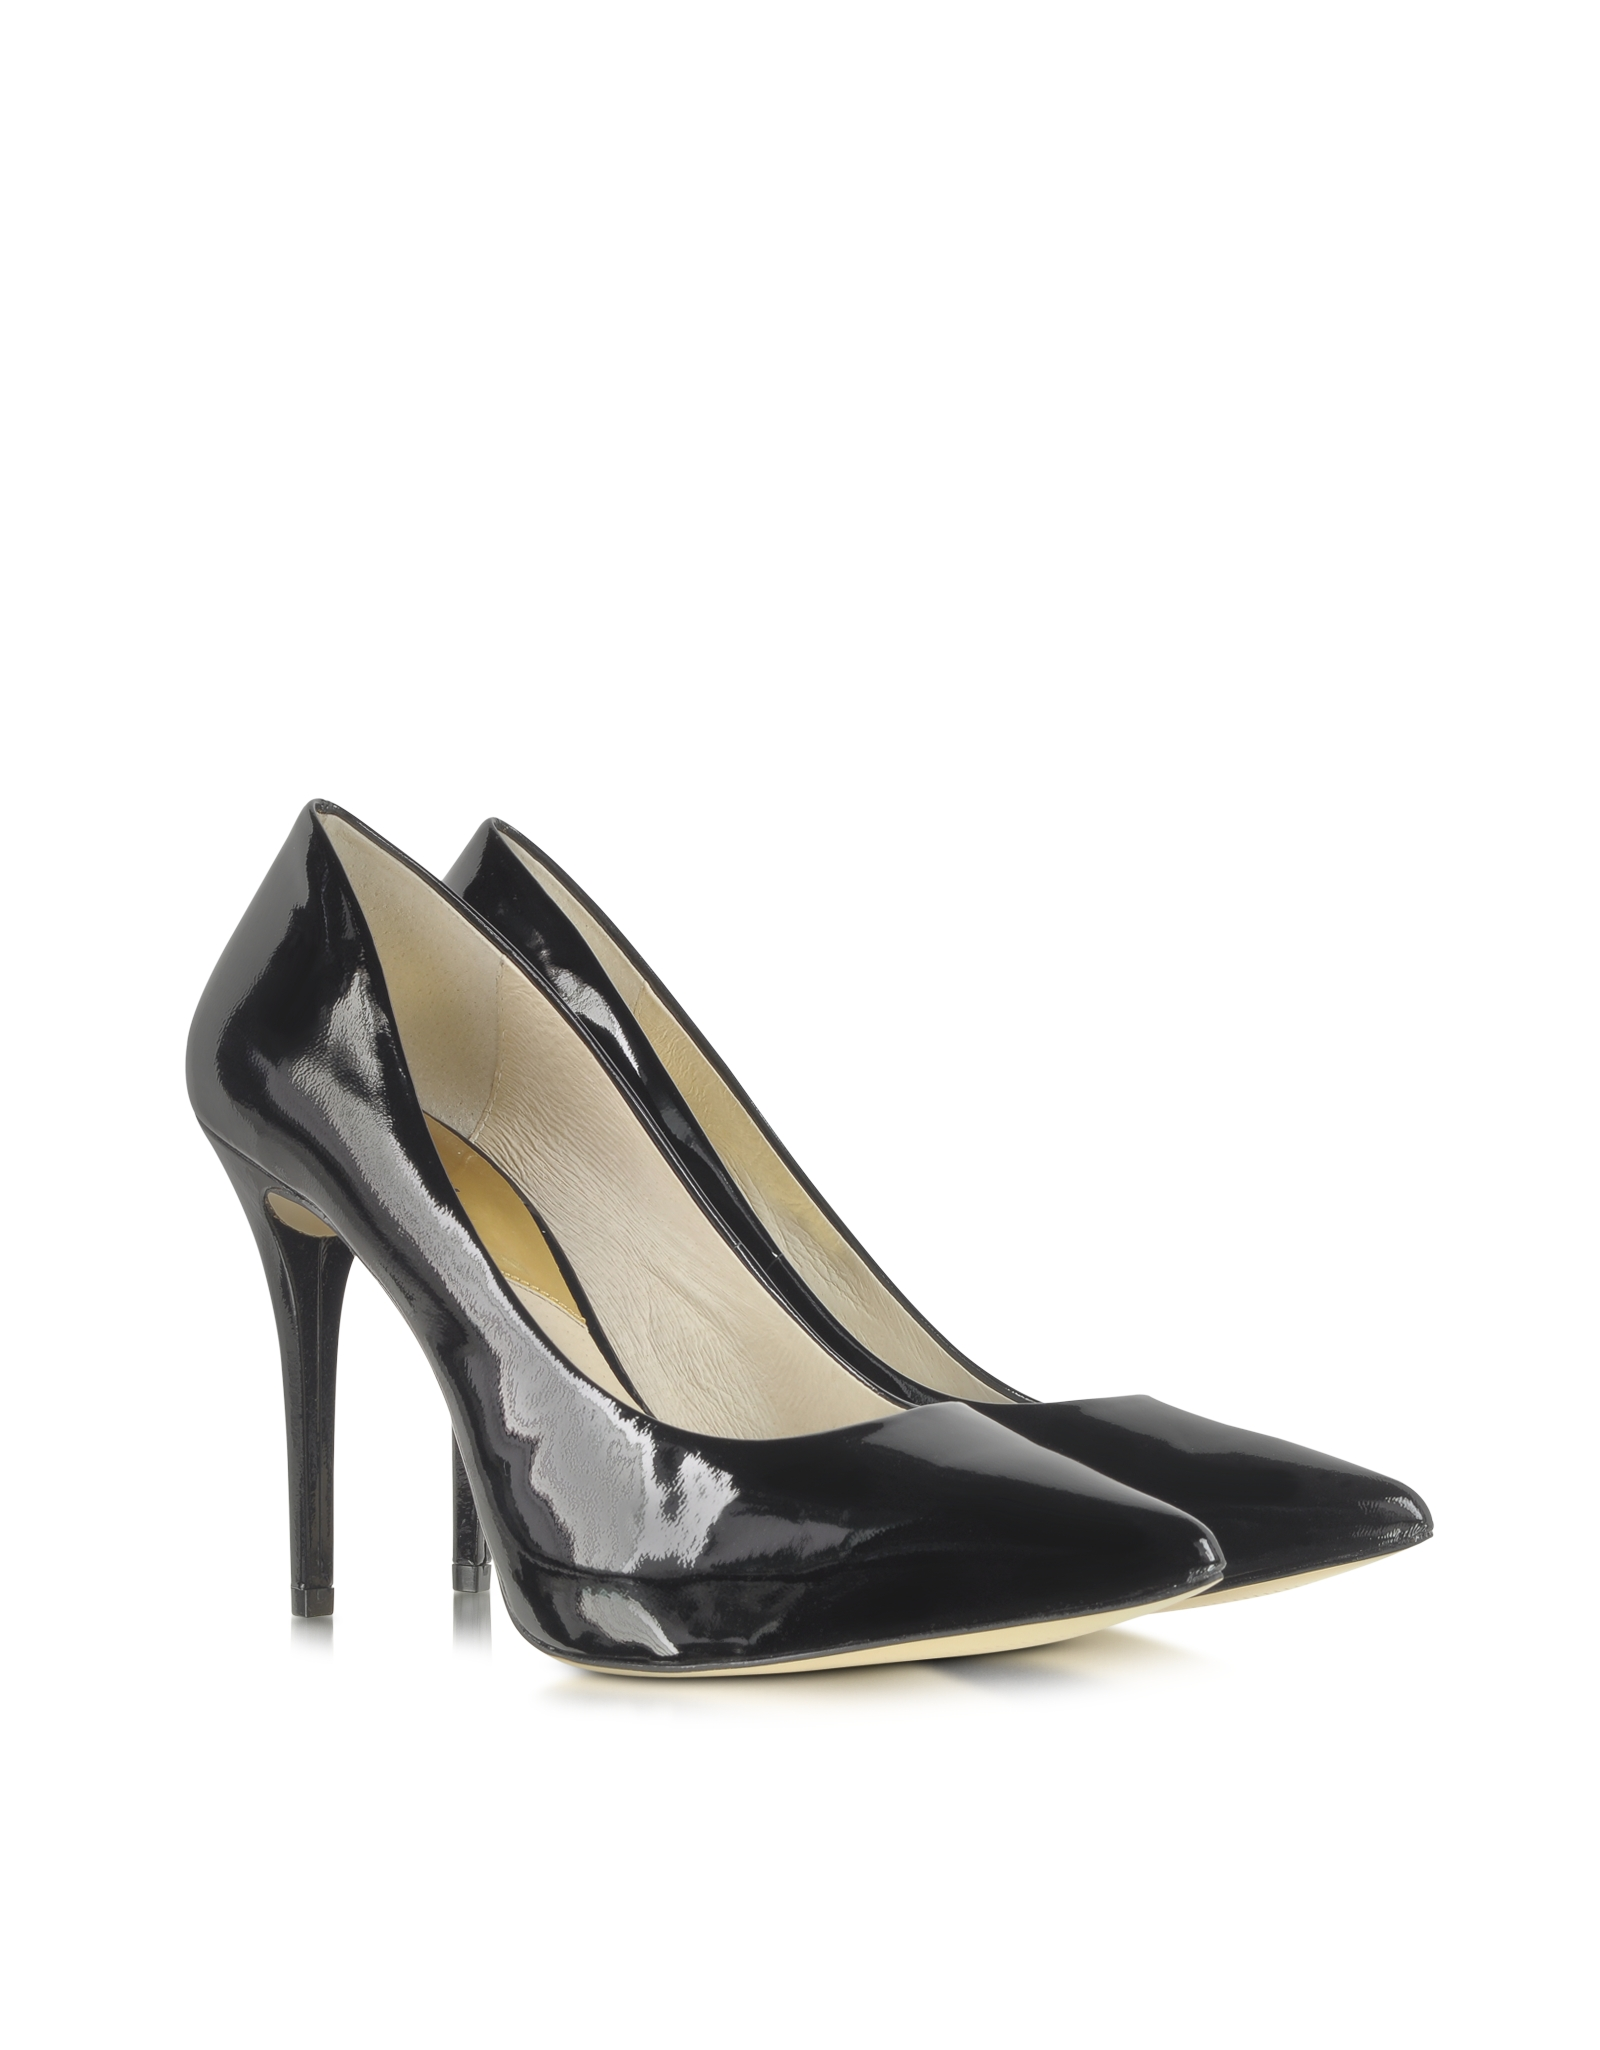 michael kors joselle black patent leather pointedtoe pump in black lyst. Black Bedroom Furniture Sets. Home Design Ideas